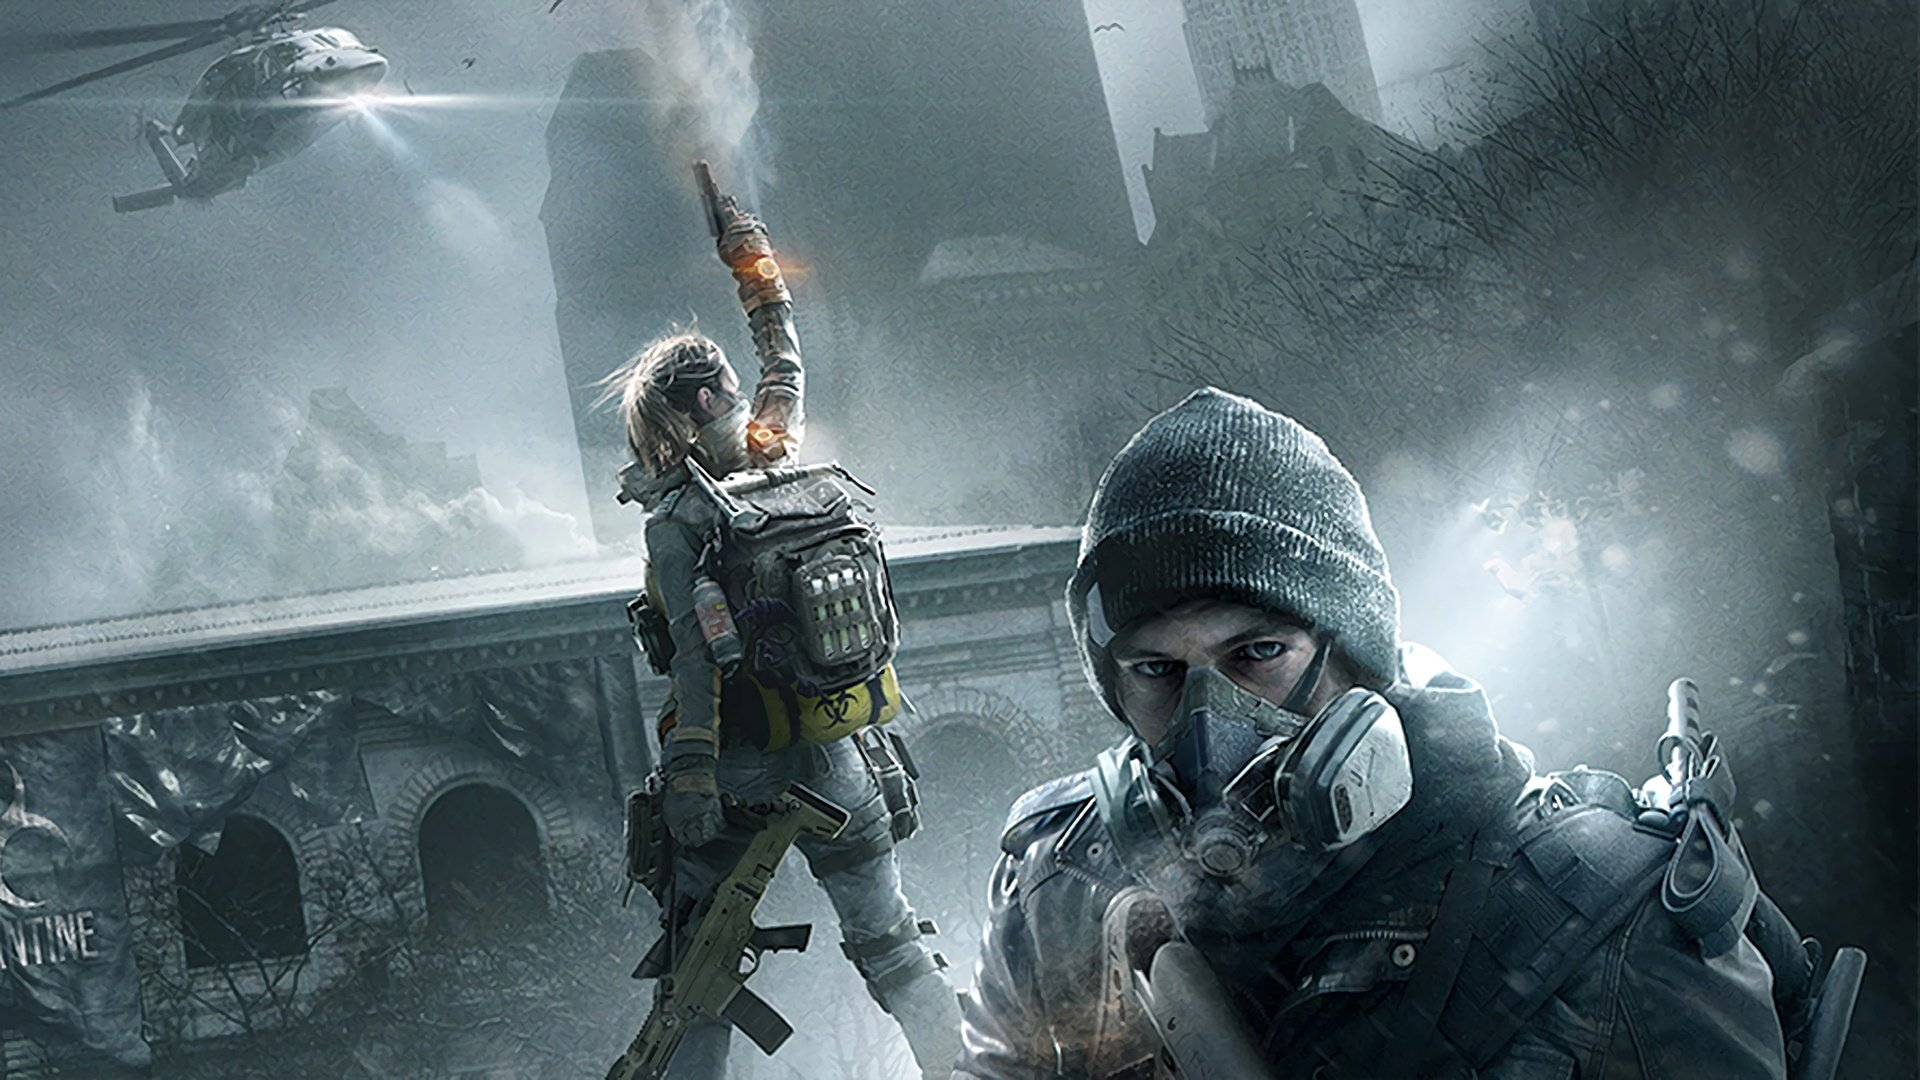 Awesome Tom Clancys The Division Free Wallpaper ID450028 For Hd 1920x1080 Desktop